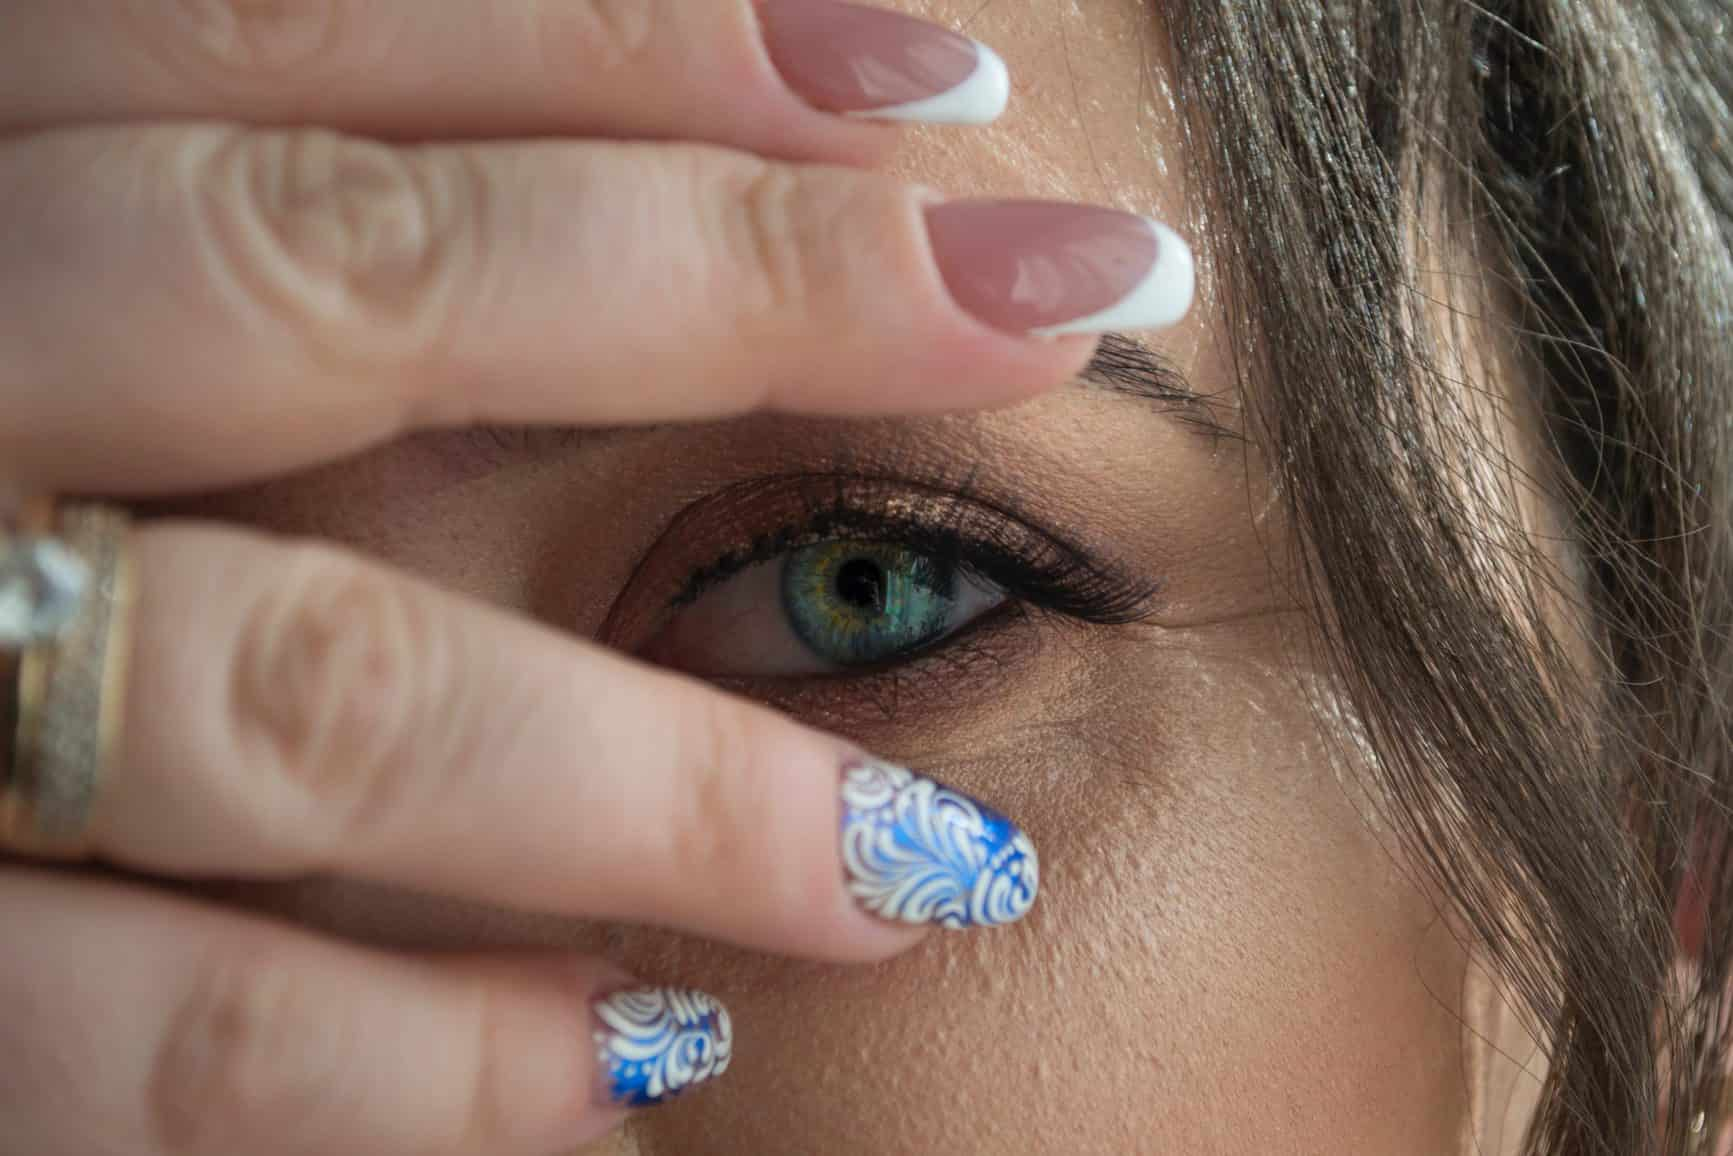 Common Tools to Get Started with Nail Art